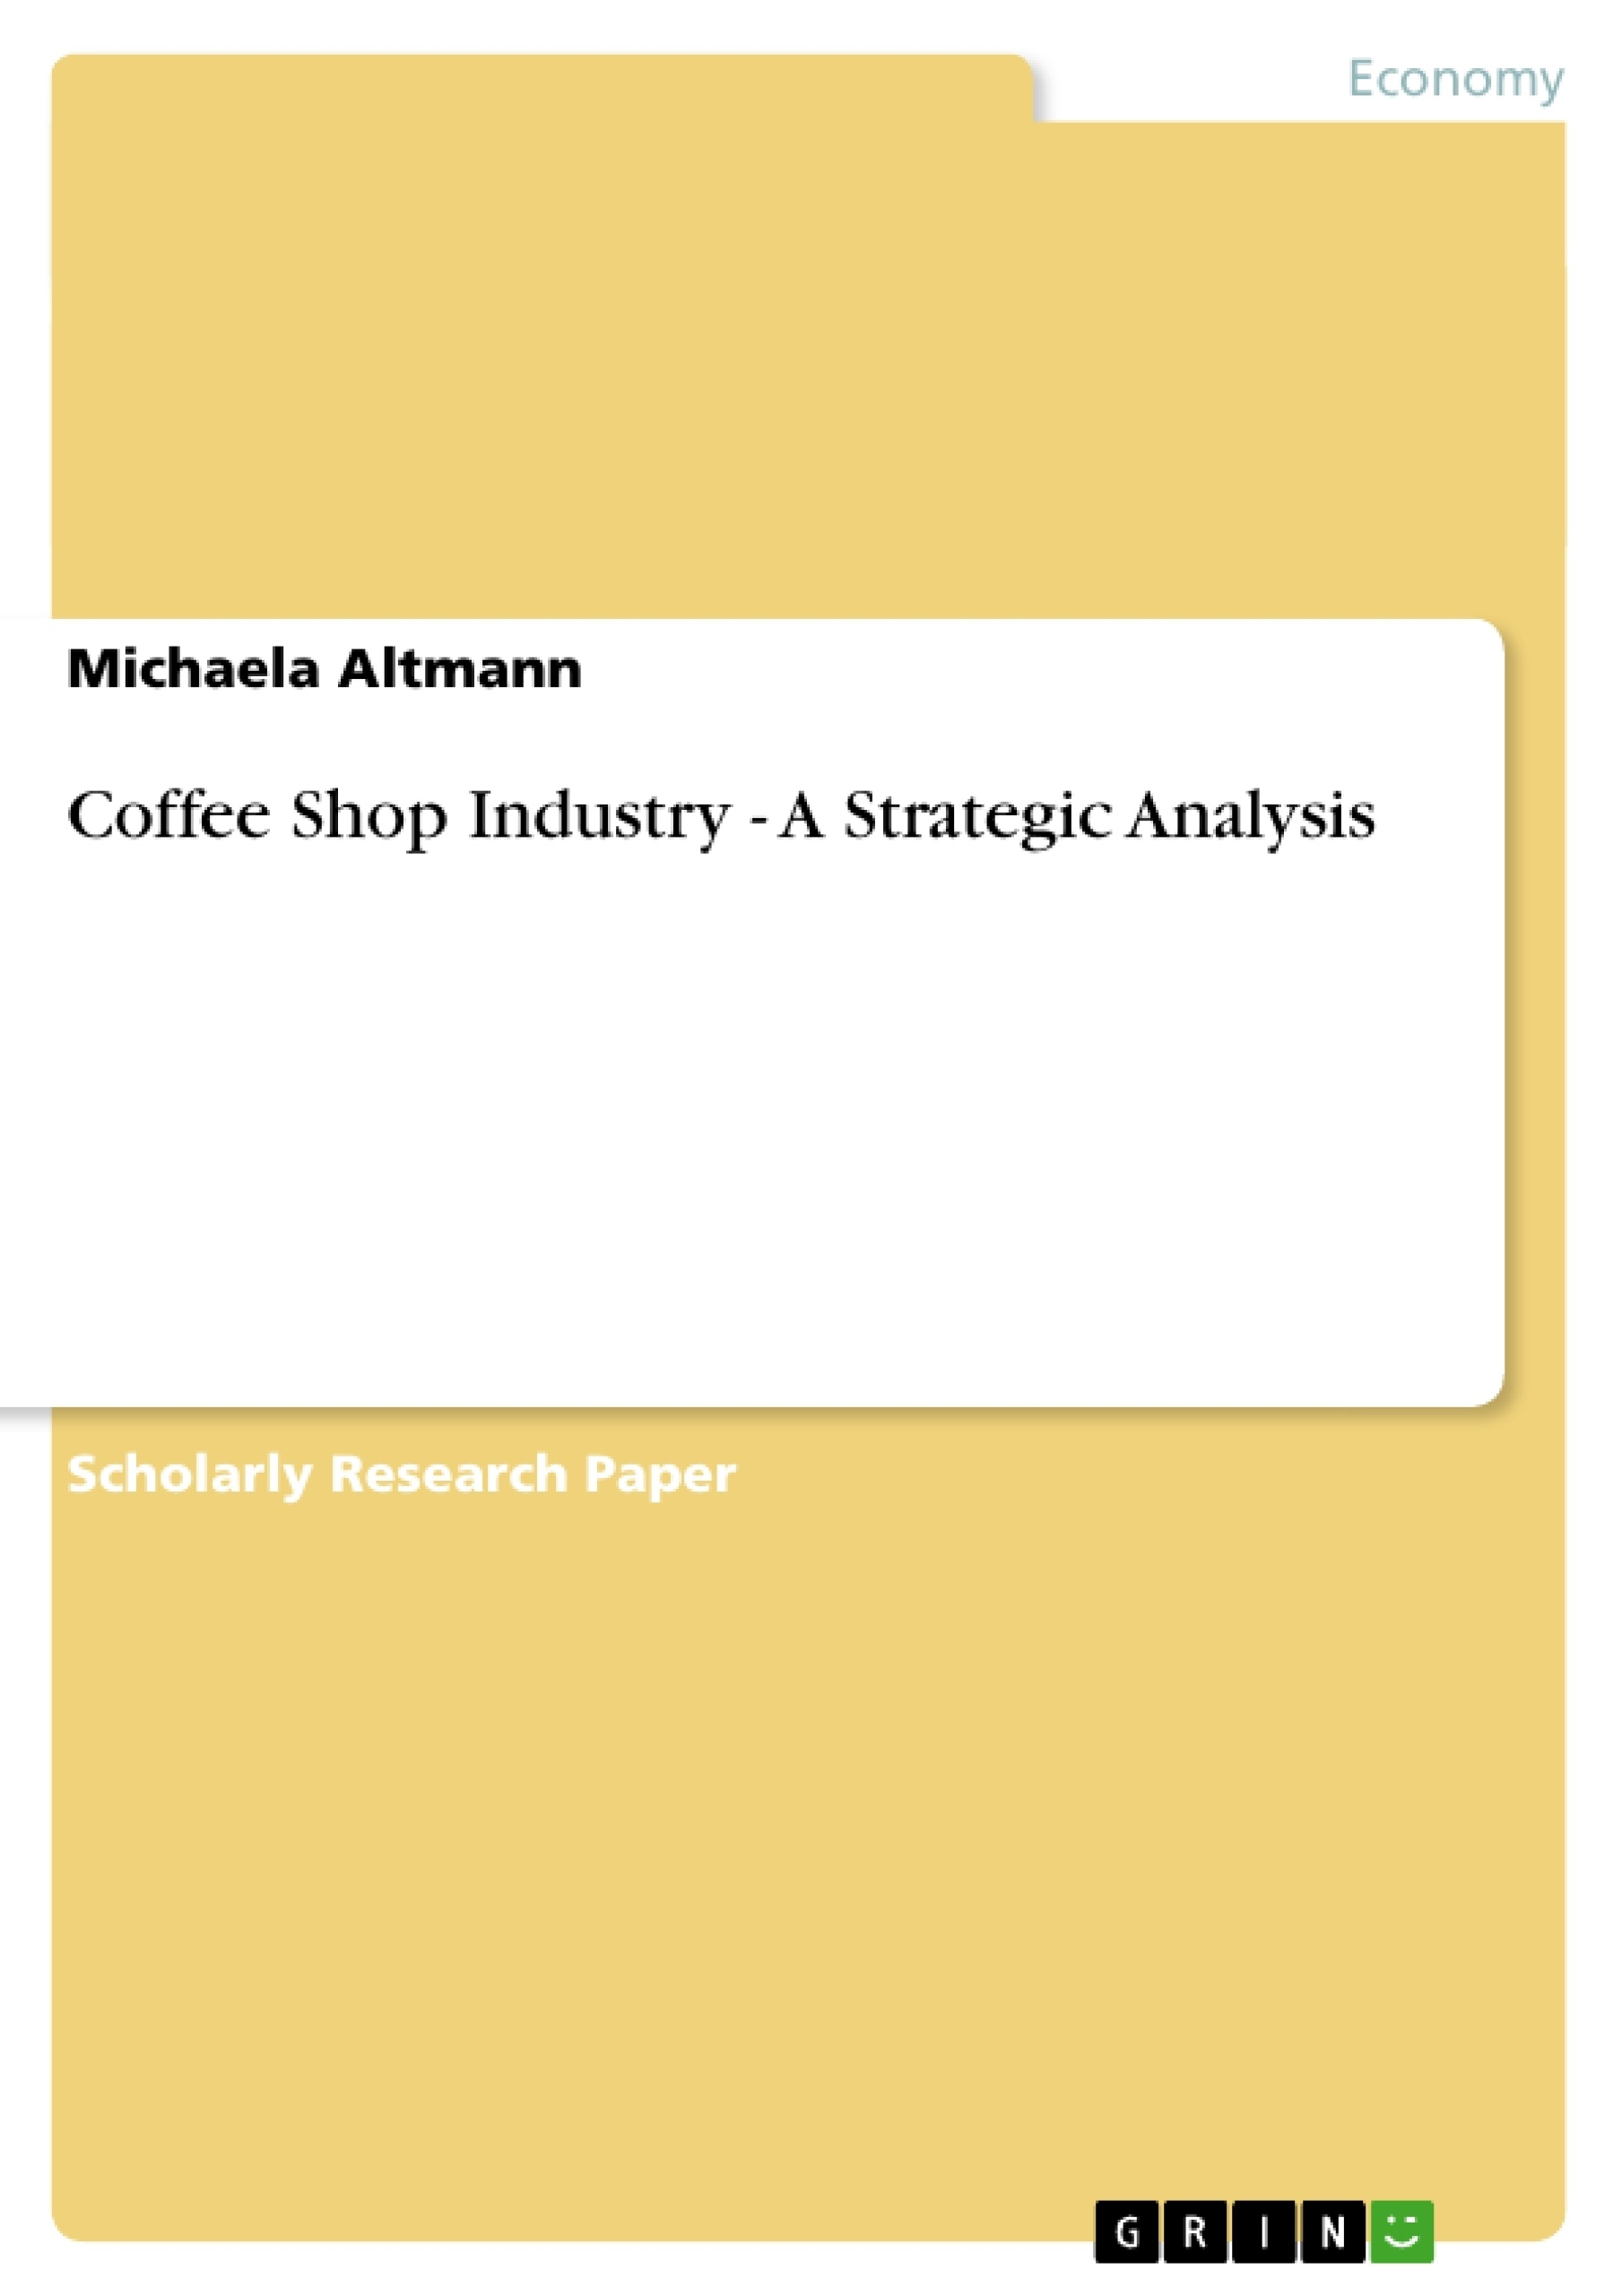 essay on it industry coffee shop industry a strategic analysis  coffee shop industry a strategic analysis publish your coffee shop industry a strategic analysis publish your